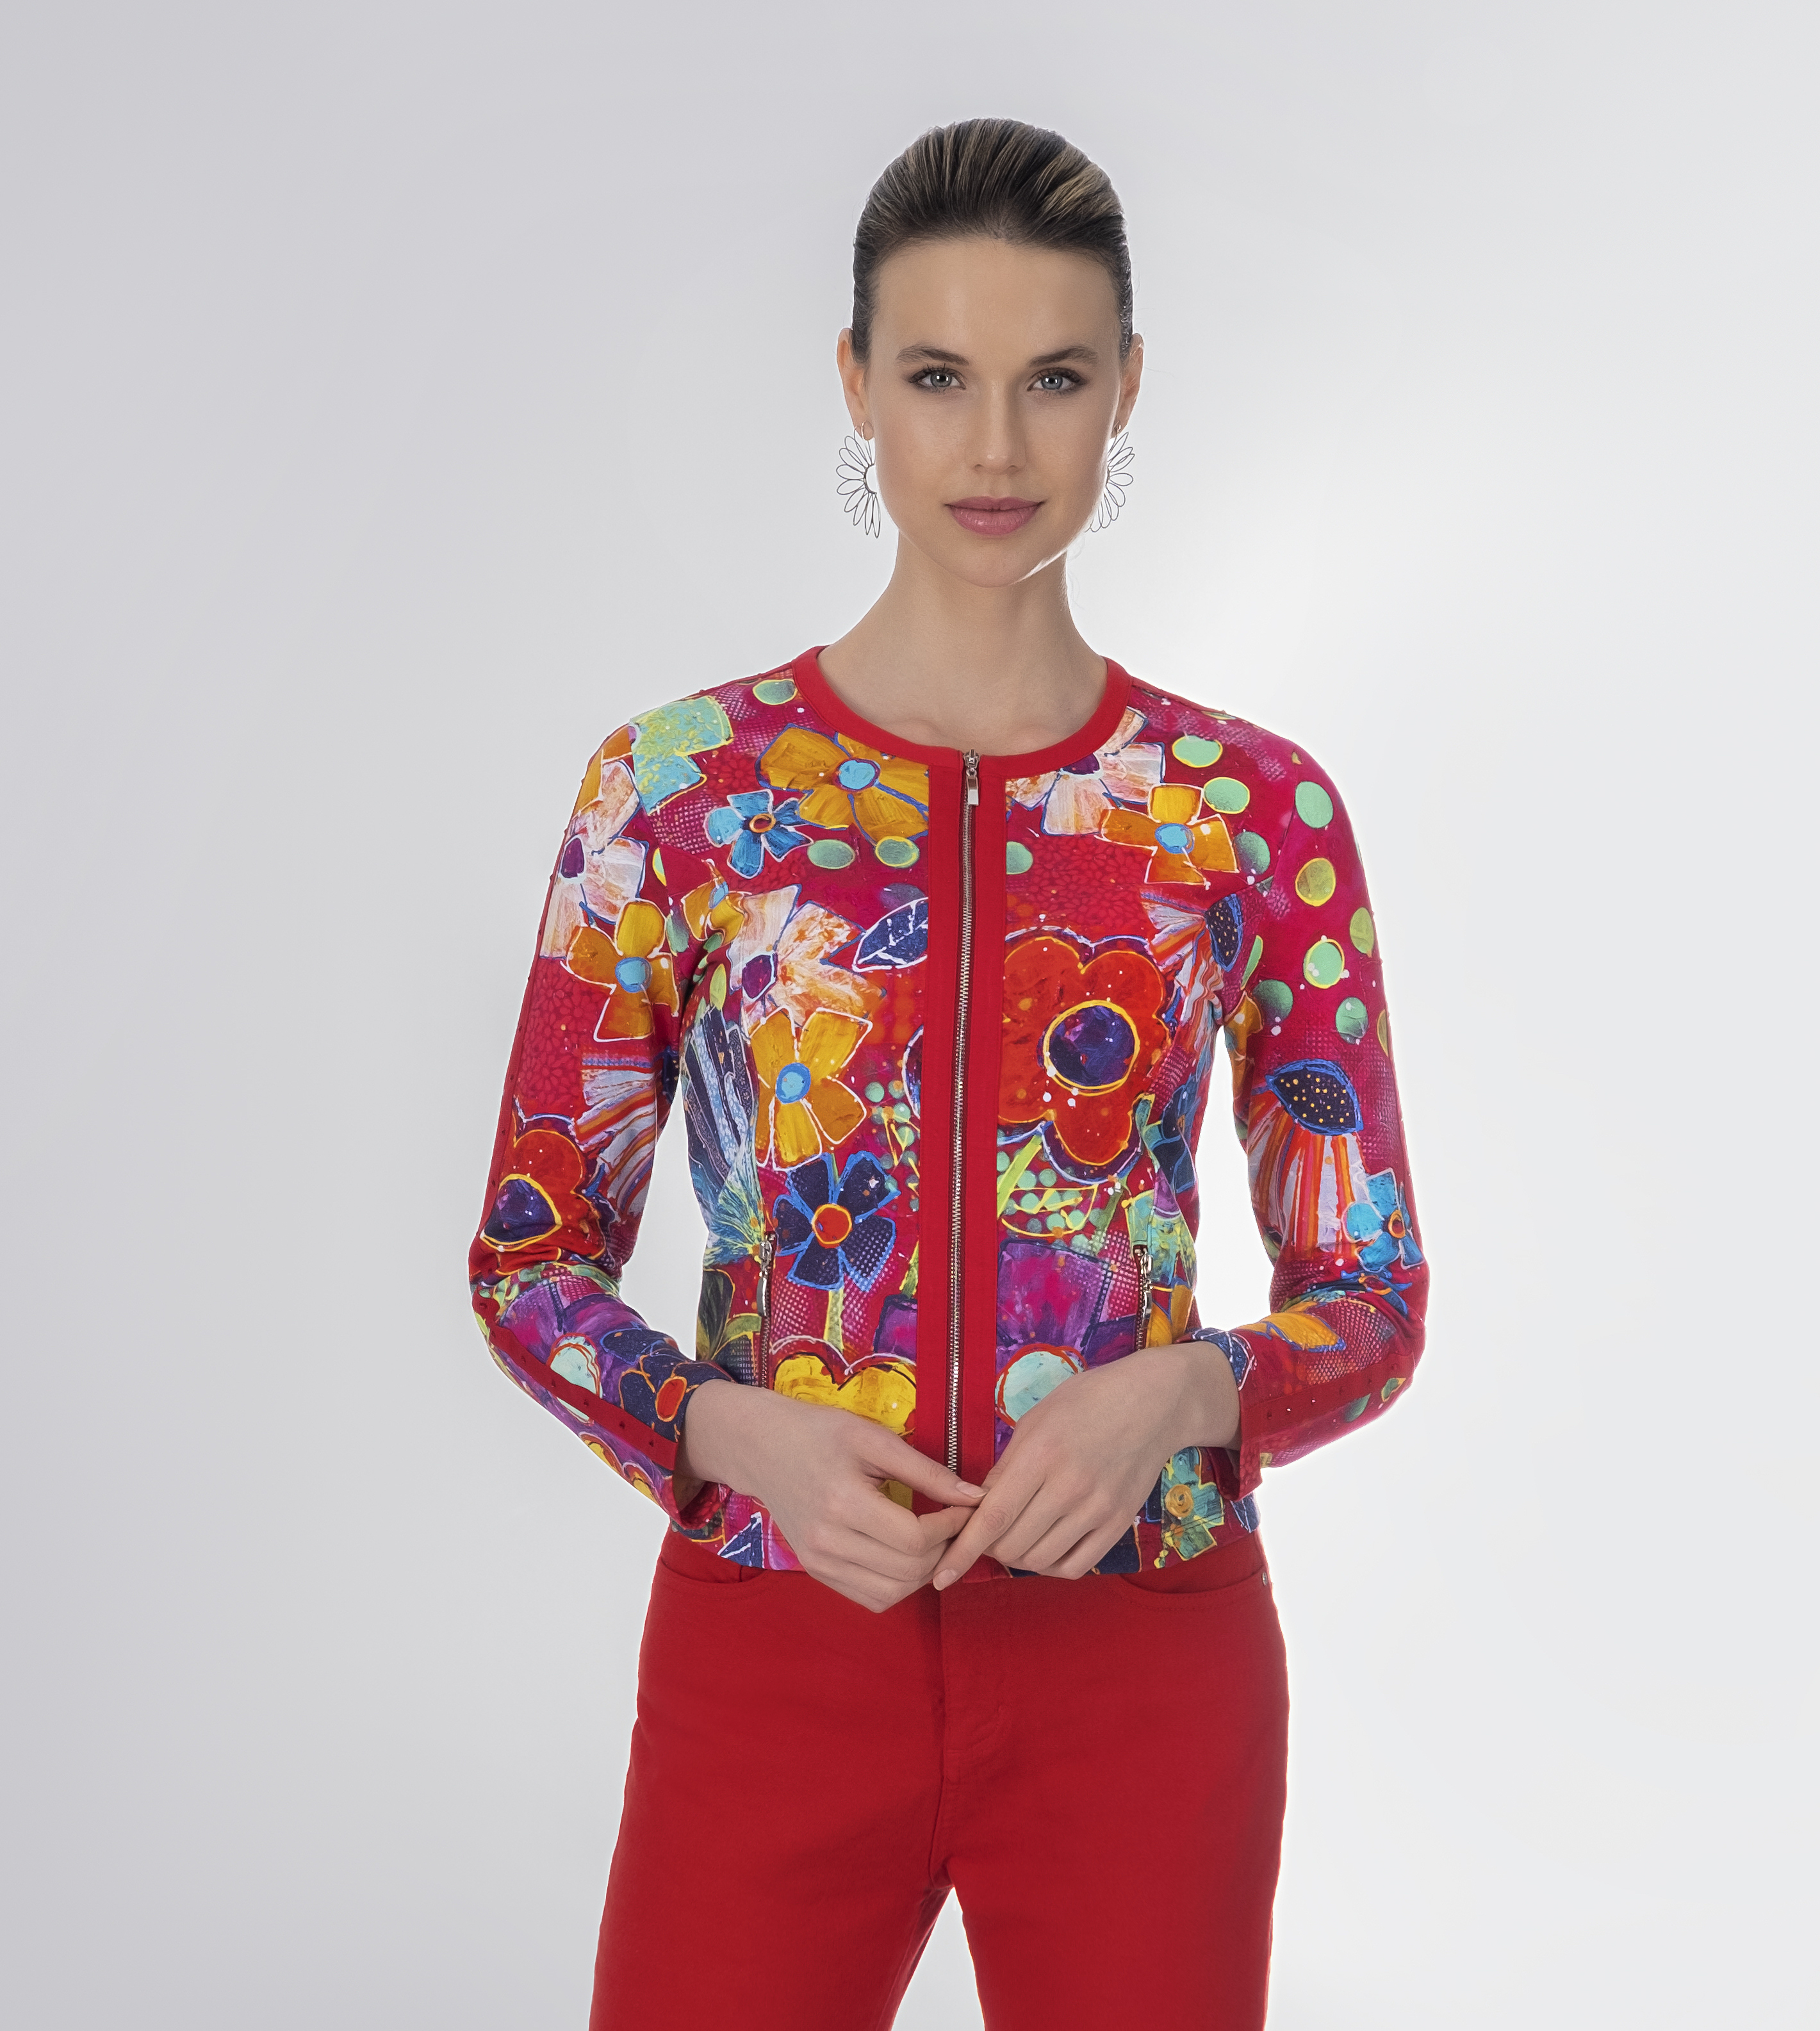 Simply Art: Fiesta Flowers Soft Denim Zip Up Abstract Art Jacket SOLD OUT Dolcezza_SimplyArt_21700